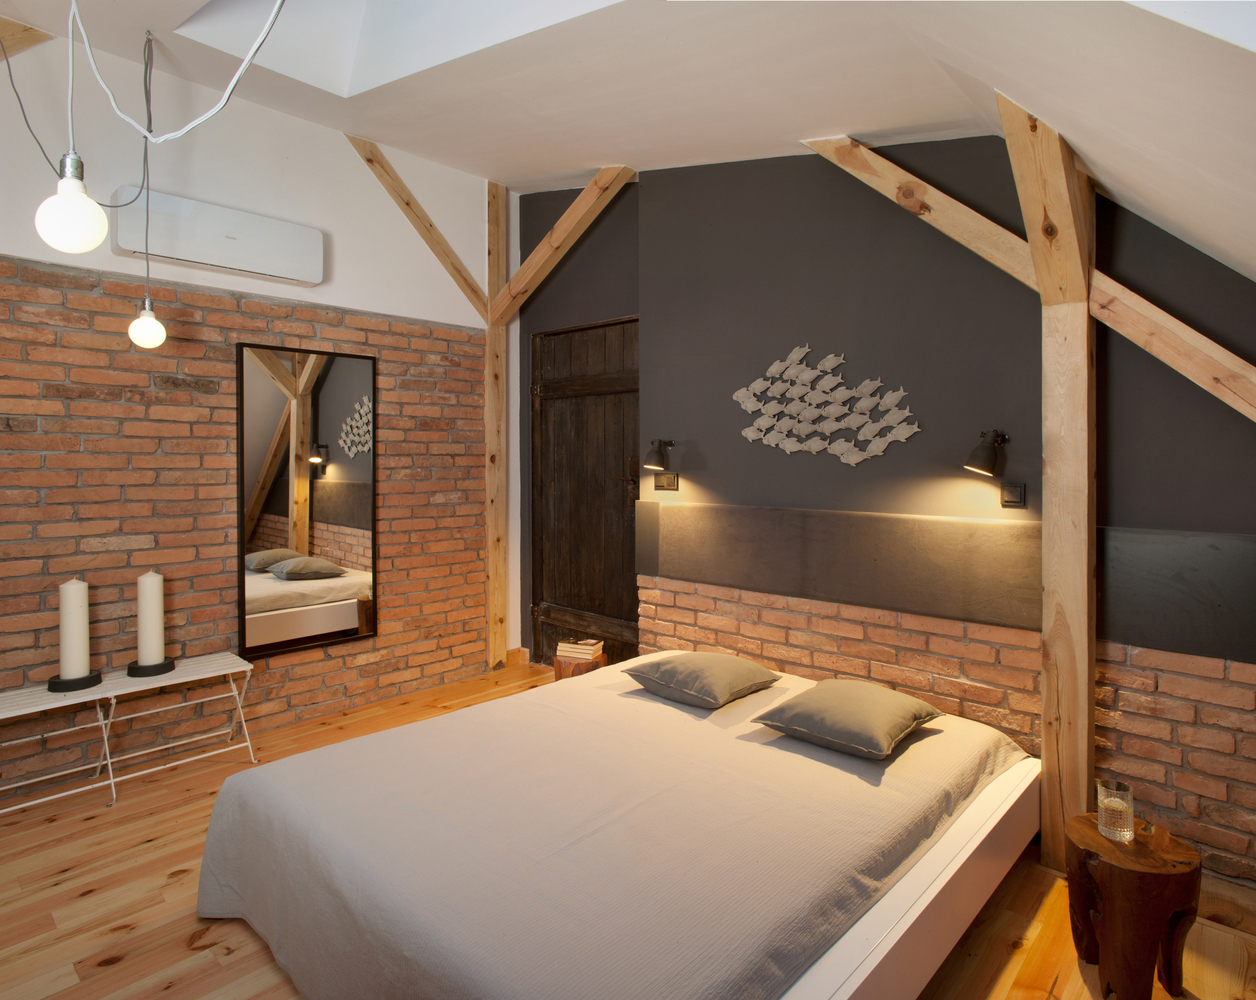 Unique Renovated Attic Loft Space In A Historic Building